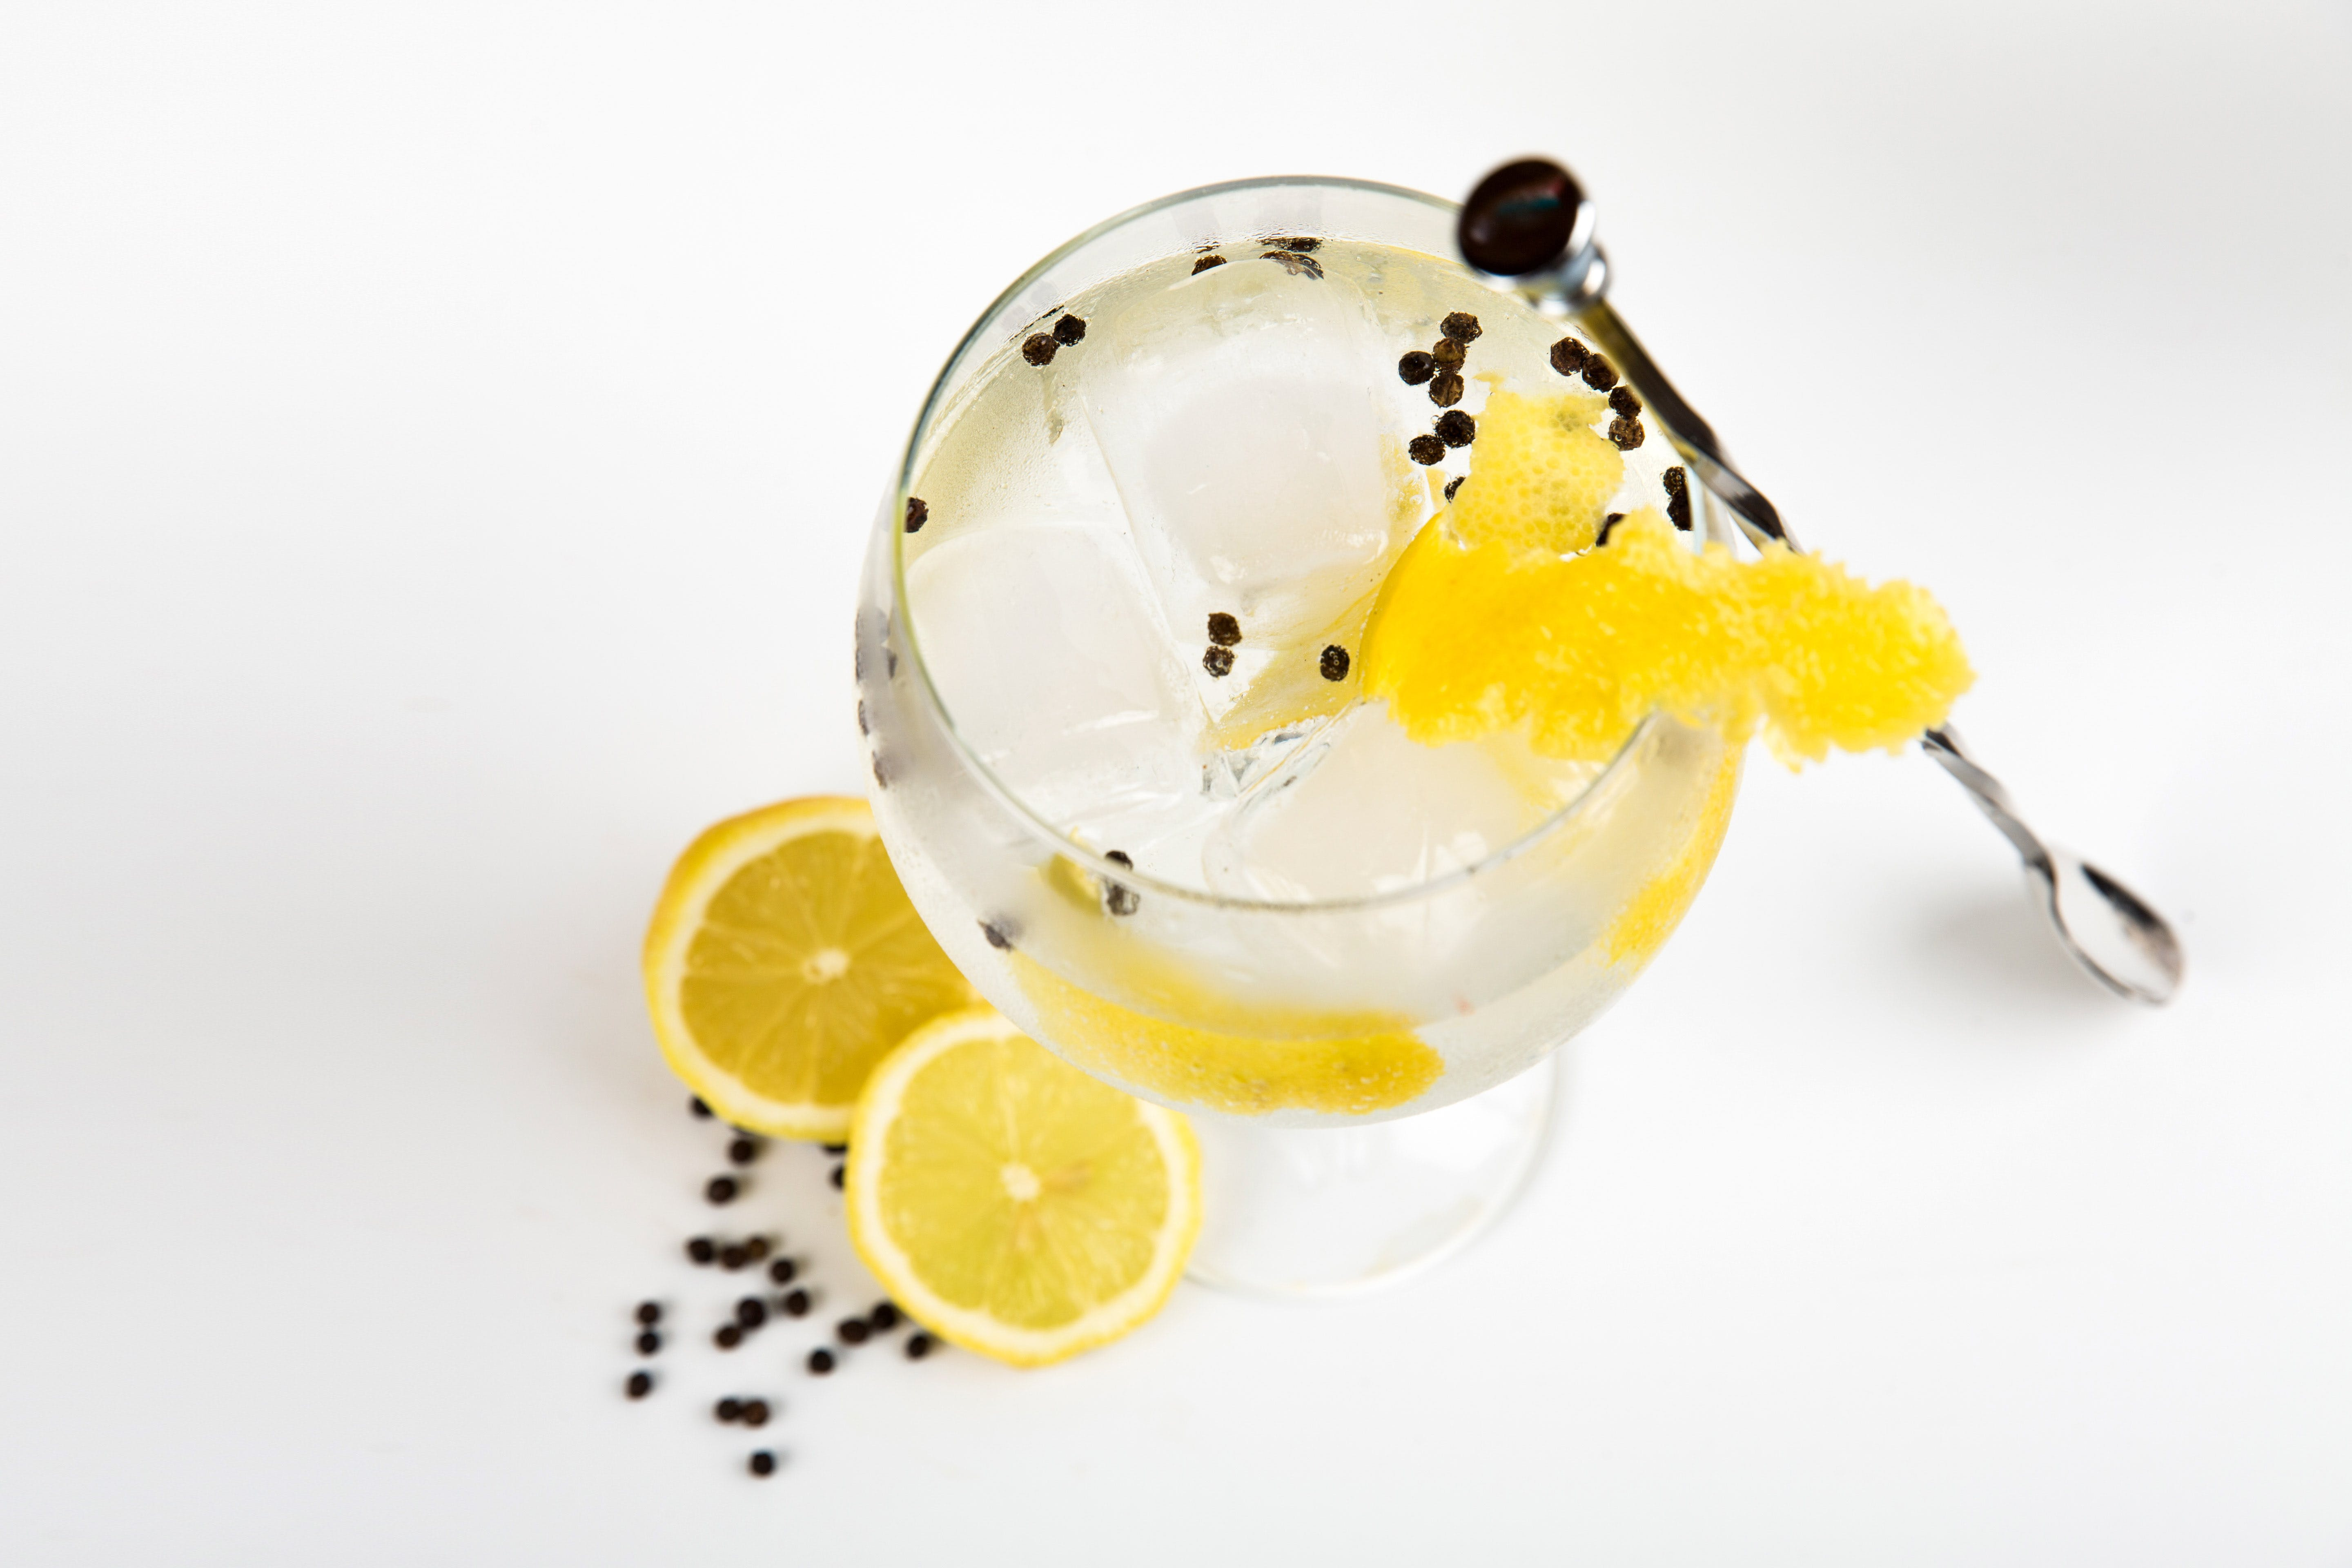 Liquor With Ice Cubes and Slice of Yellow Fruit